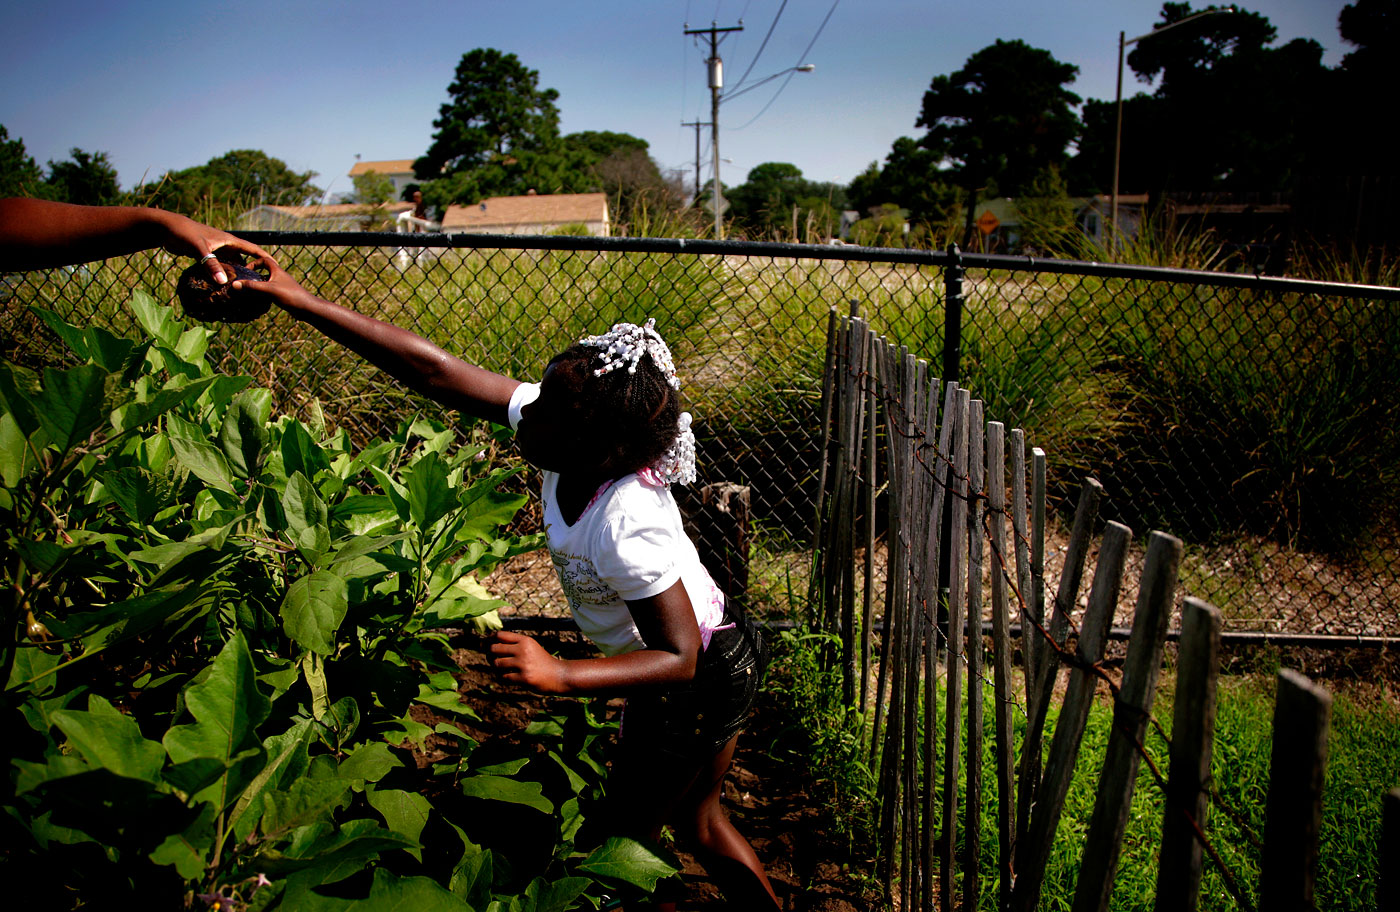 Nya in the garden, 2009Nya Tolbert, 8, picks vegetables from the East Ocean View Community Center Children's Garden.